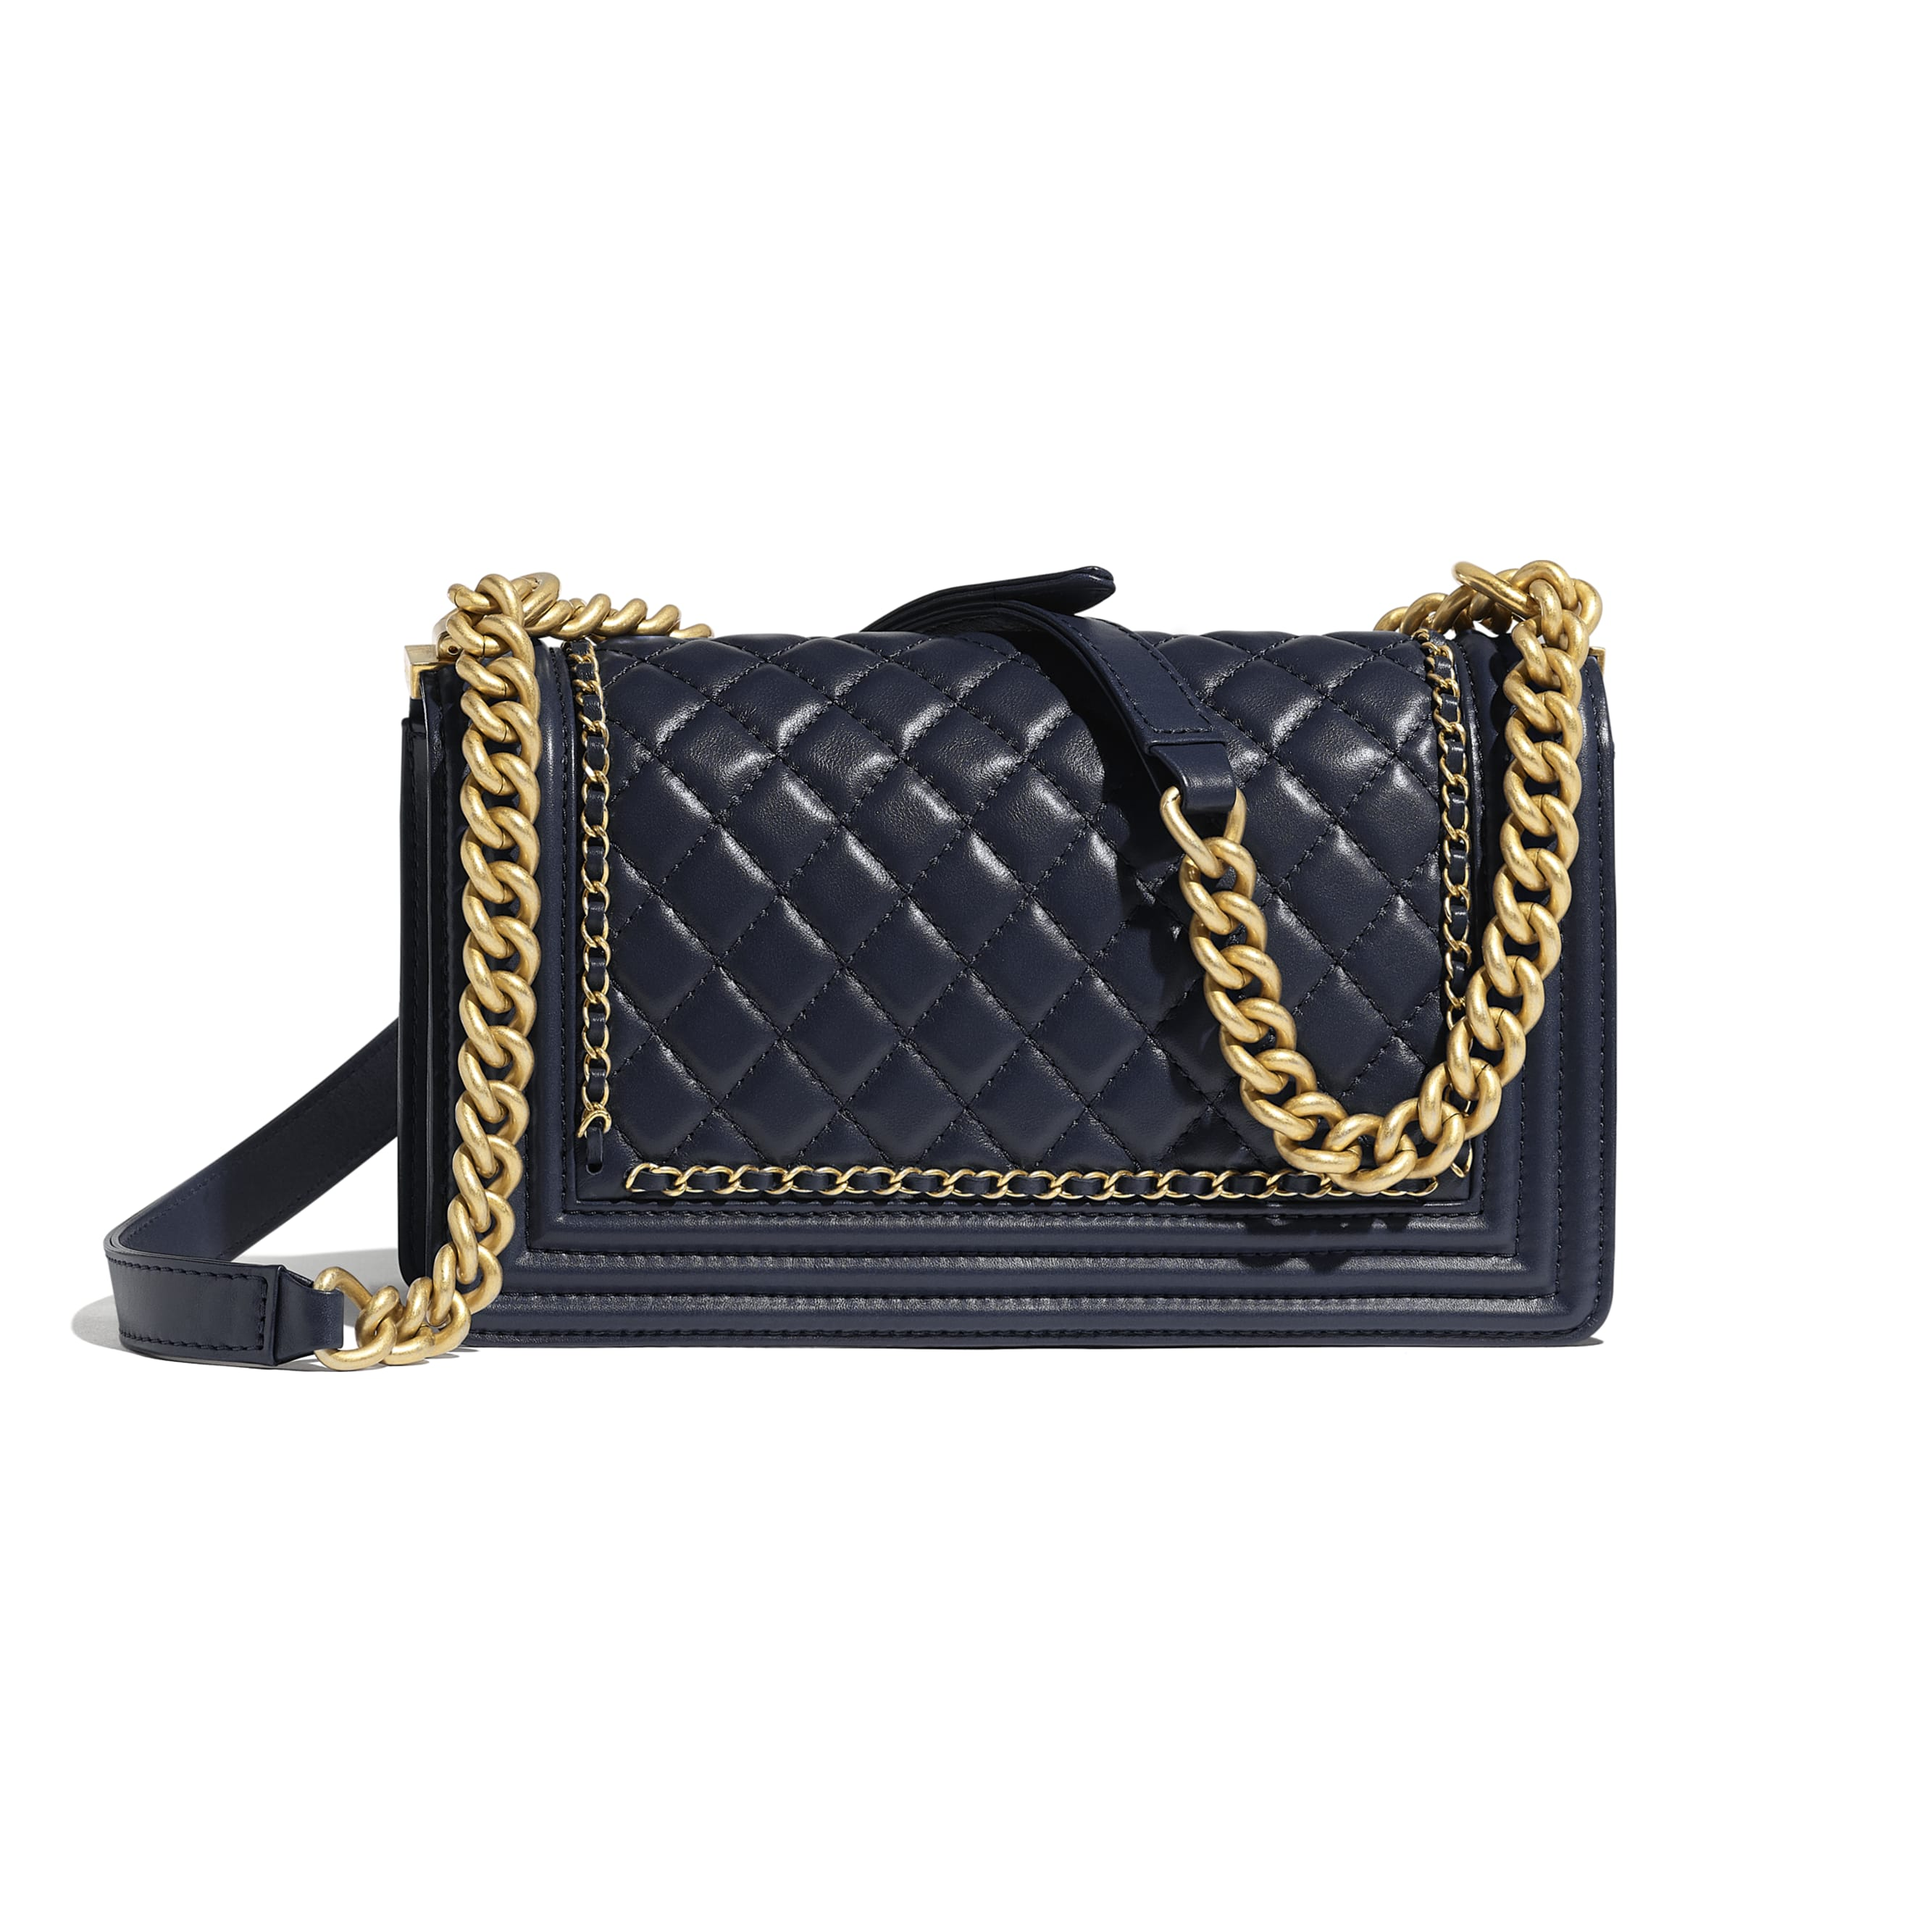 BOY CHANEL Handbag - Navy Blue - Calfskin & Gold-Tone Metal - Alternative view - see standard sized version